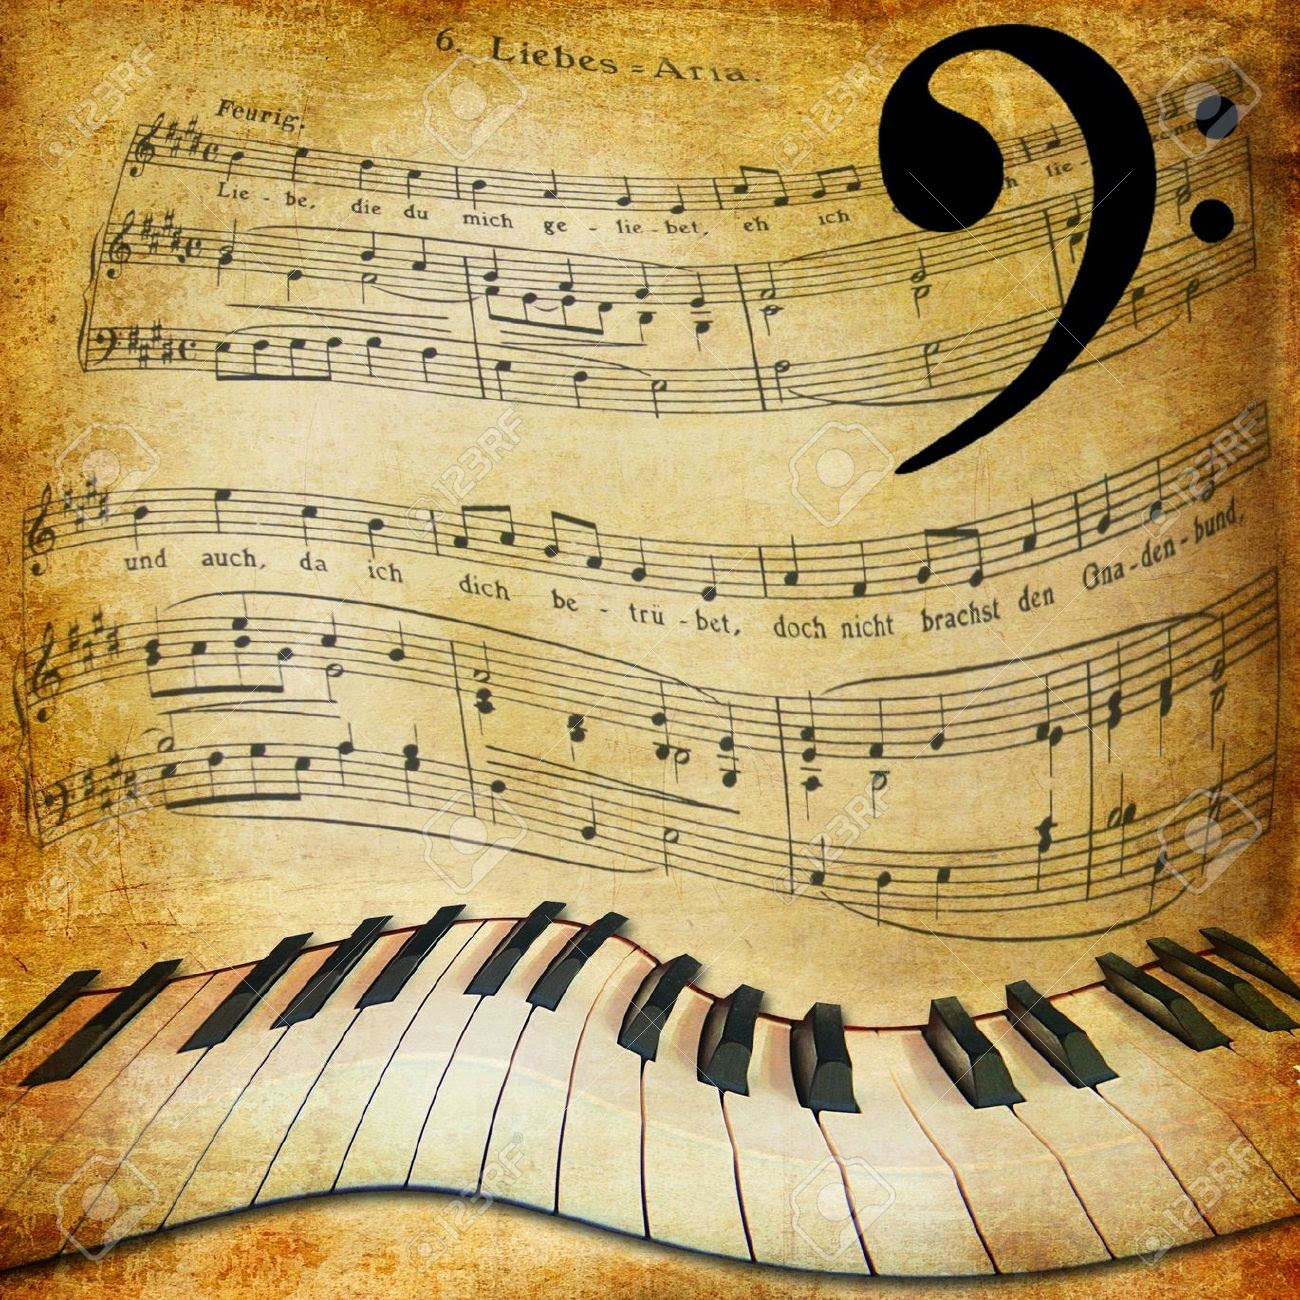 14239653-Musical-sepia-background-with-warped-piano-and-notes-Stock-Photo.jpg